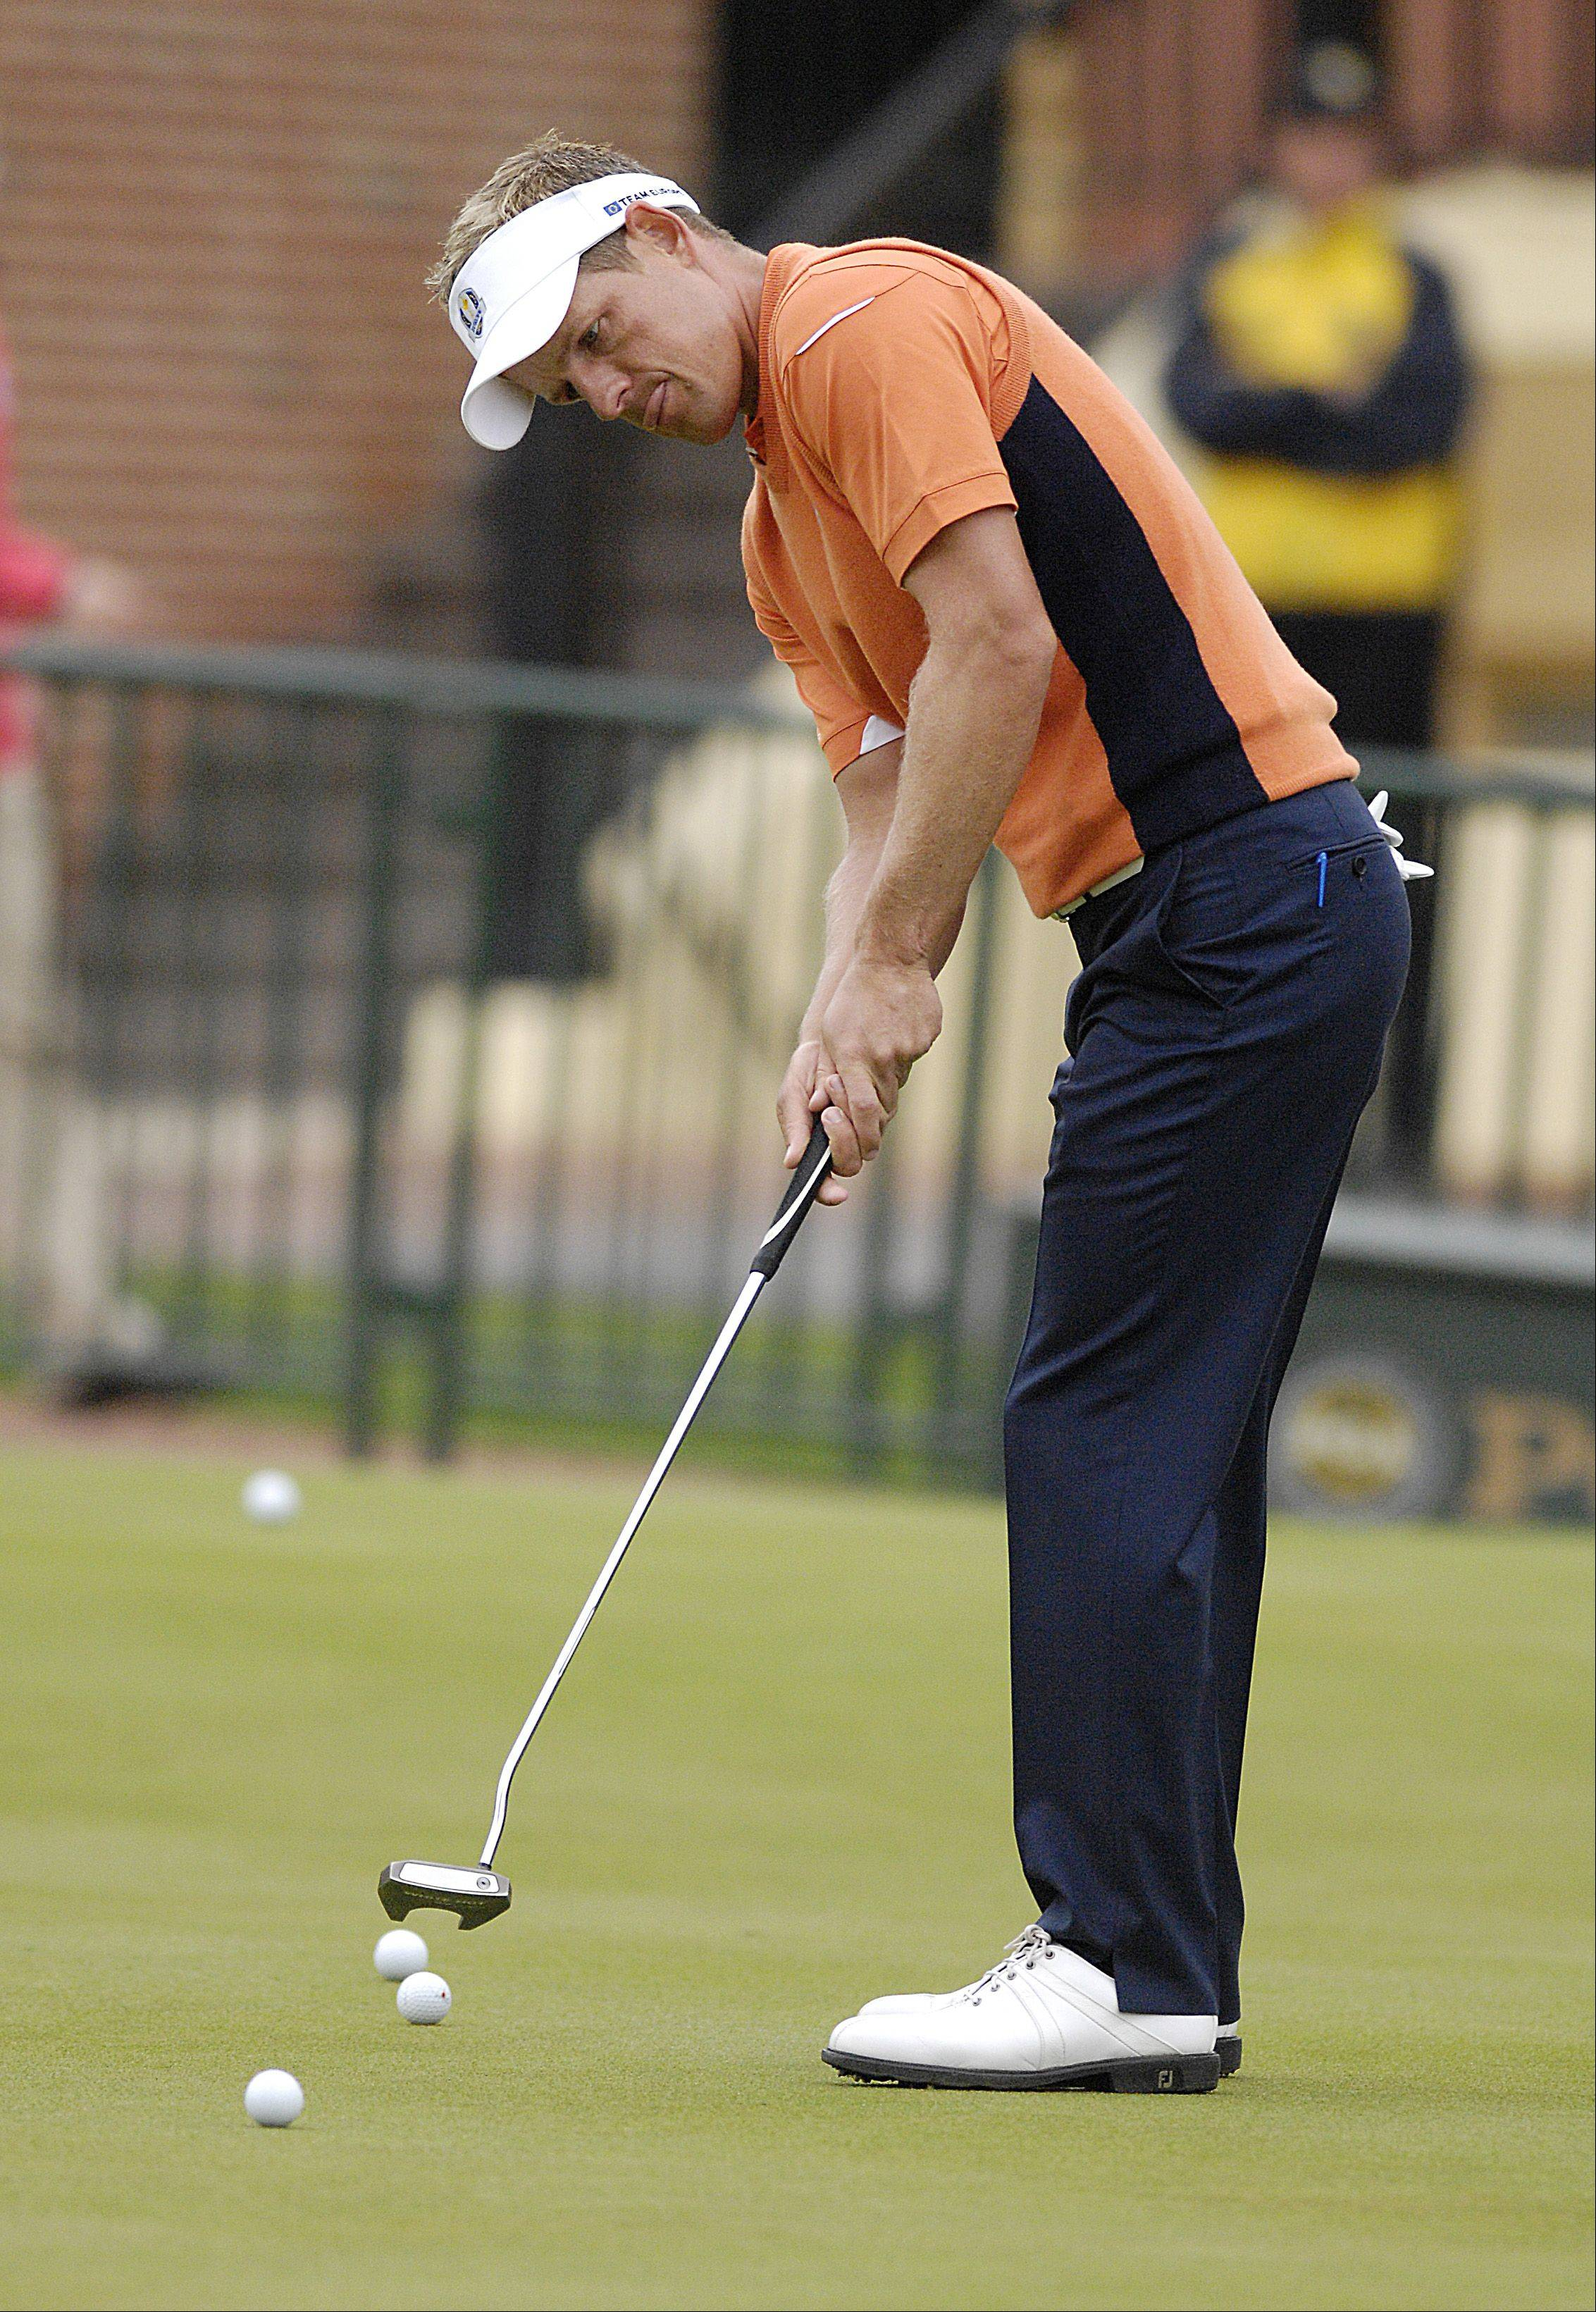 Luke Donald of the European Ryder Cup Team putts on the practice green.